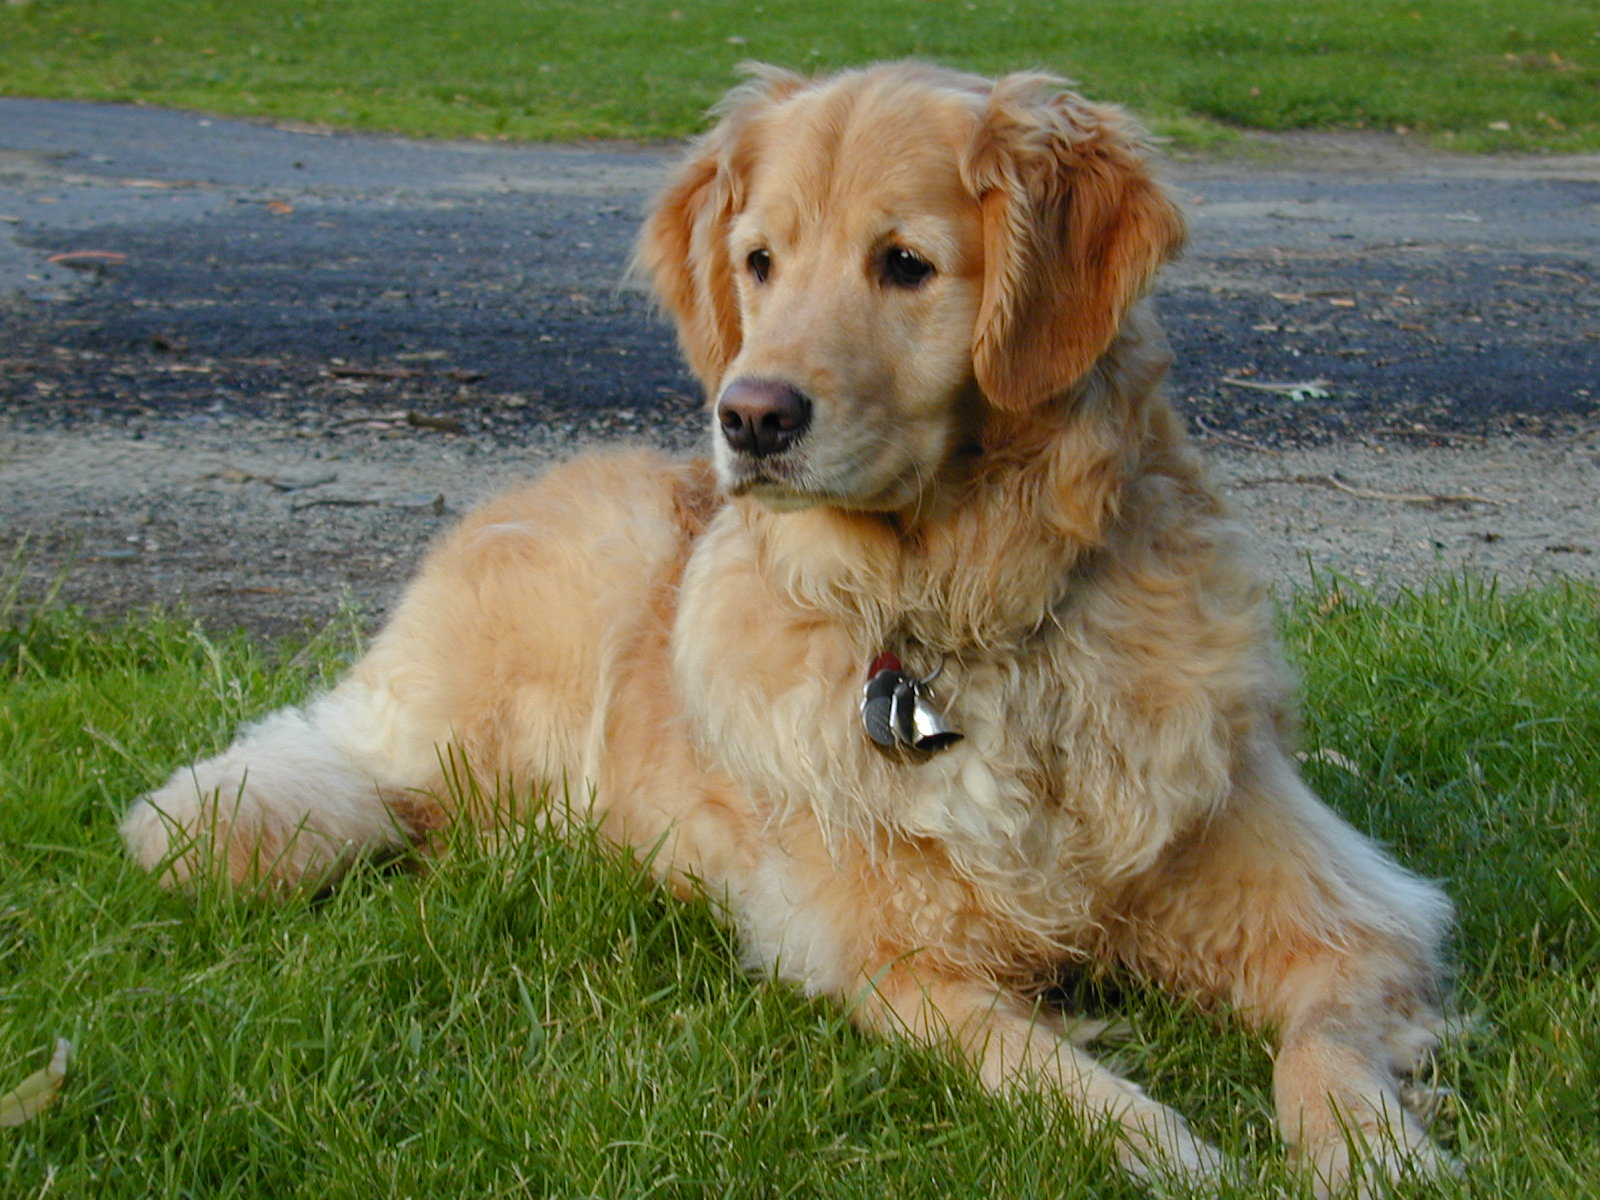 Here's a picture of our dog, Jesse, a very talented and beautiful Golden Retriever